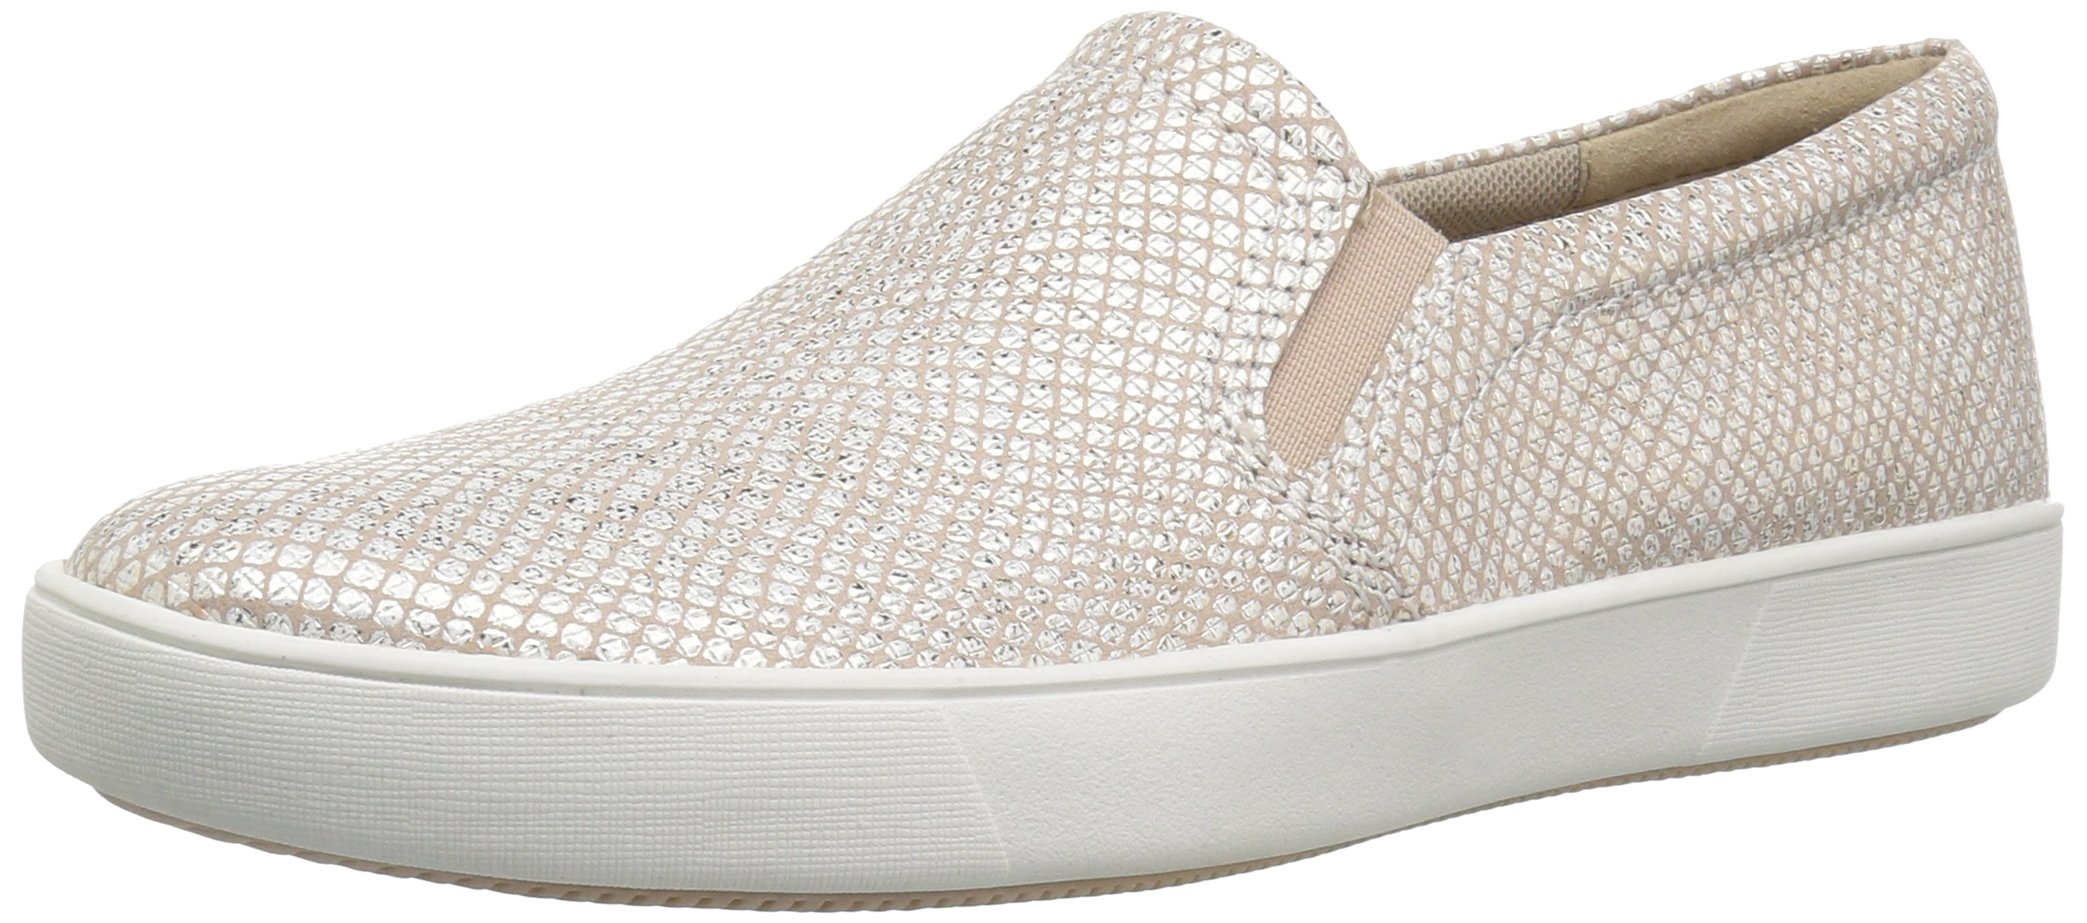 Naturalizer Women's Marianne Sneaker, Cream, 5.5 M US